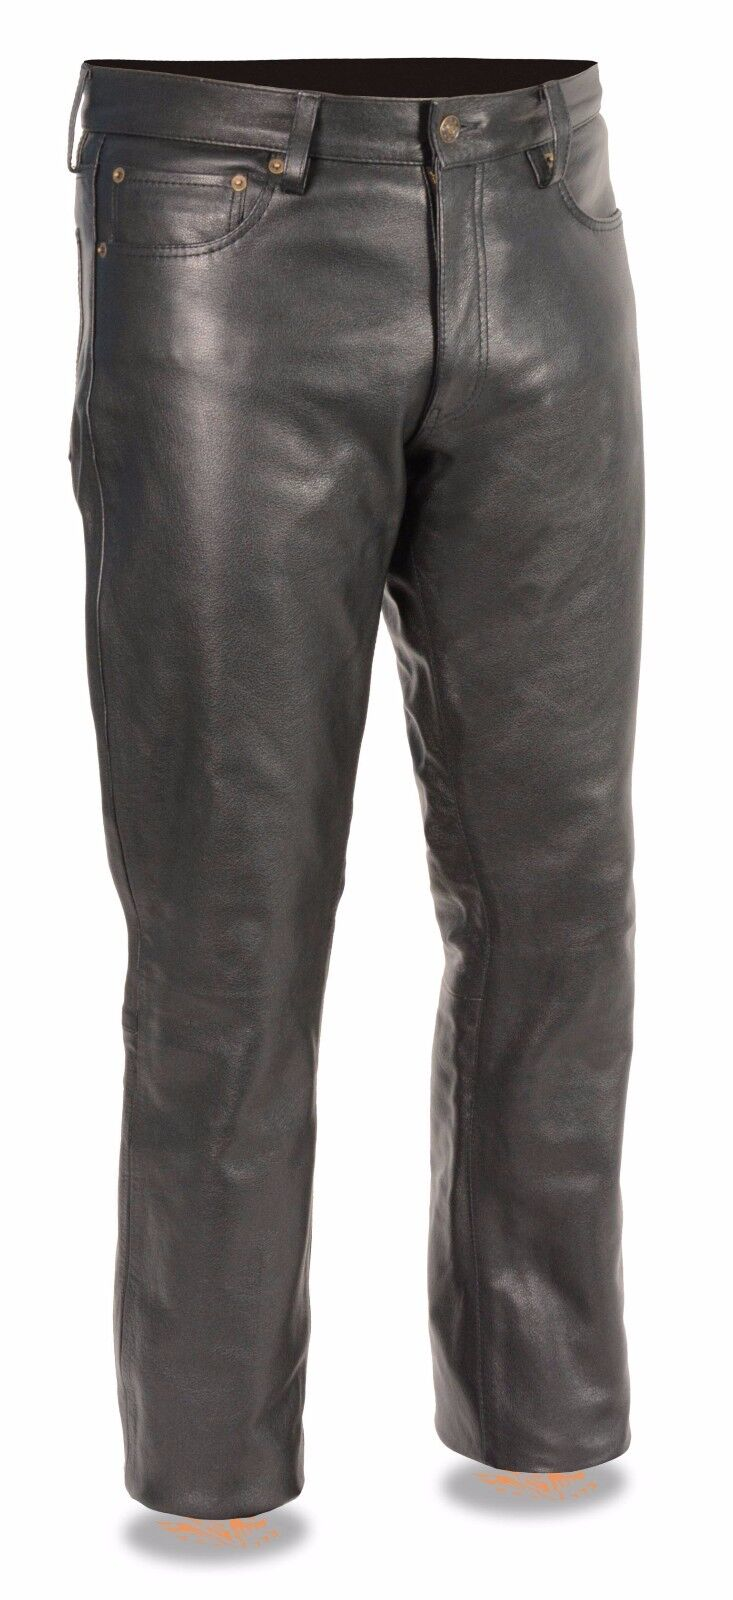 Mens Classic Black Leather 5 Pocket Motorcycle Pants